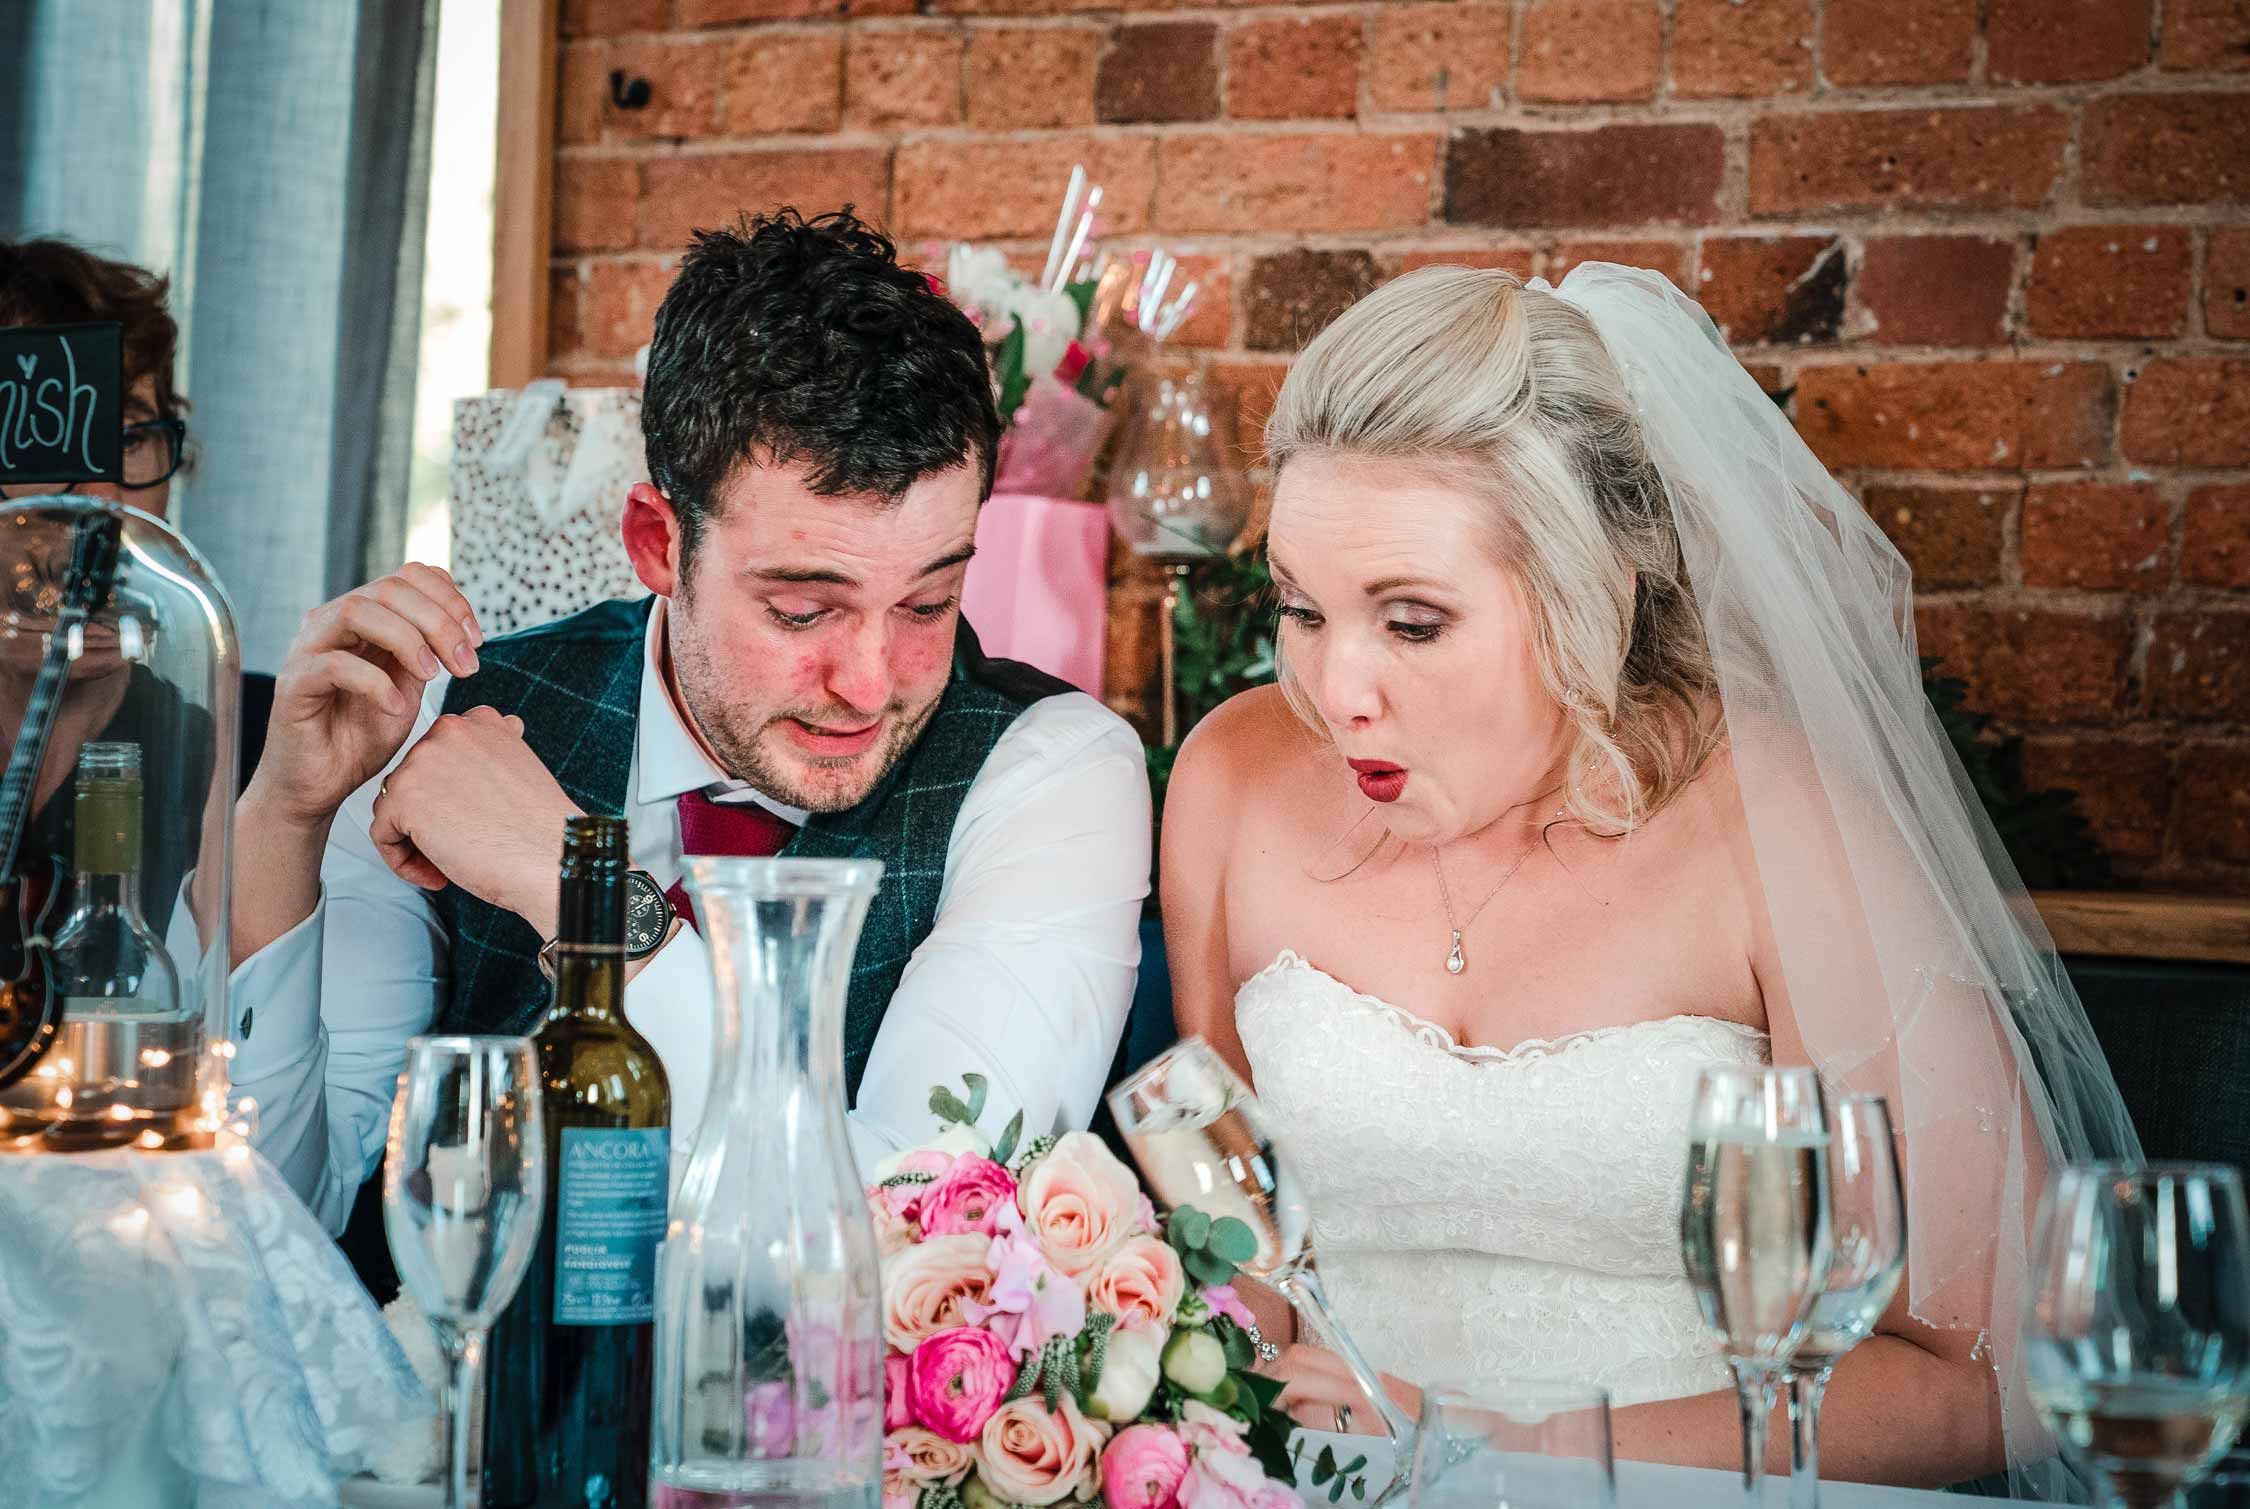 shocked look on bride & groom's face as she knocks over a glass of wine